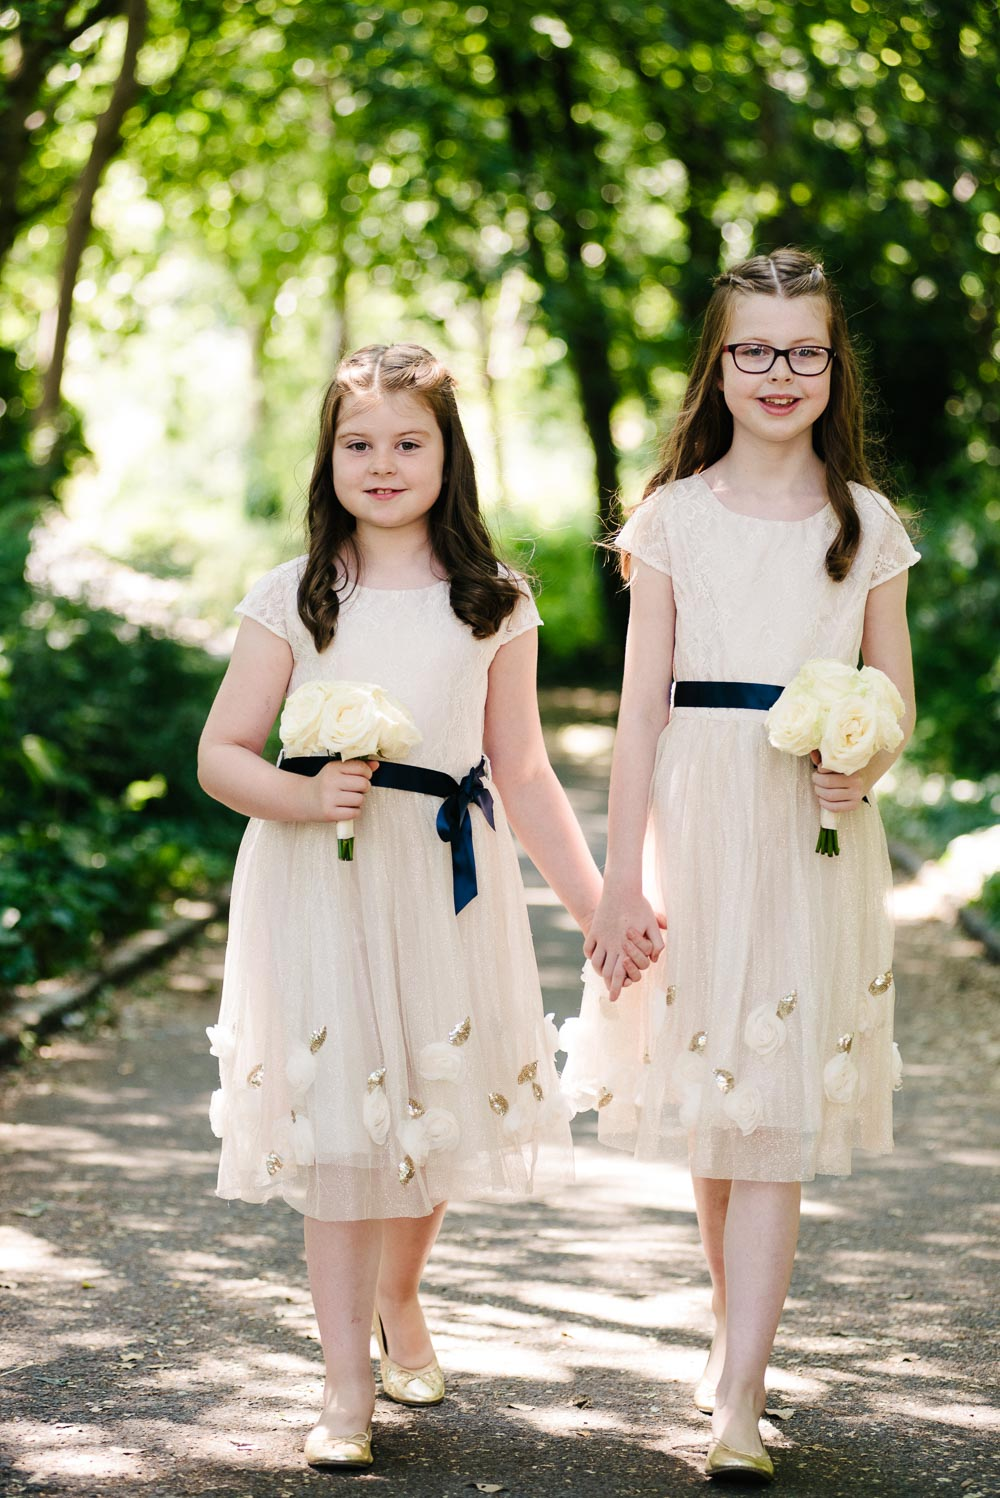 Portrait of the flower girls in Merrion Square Park in Dublin.